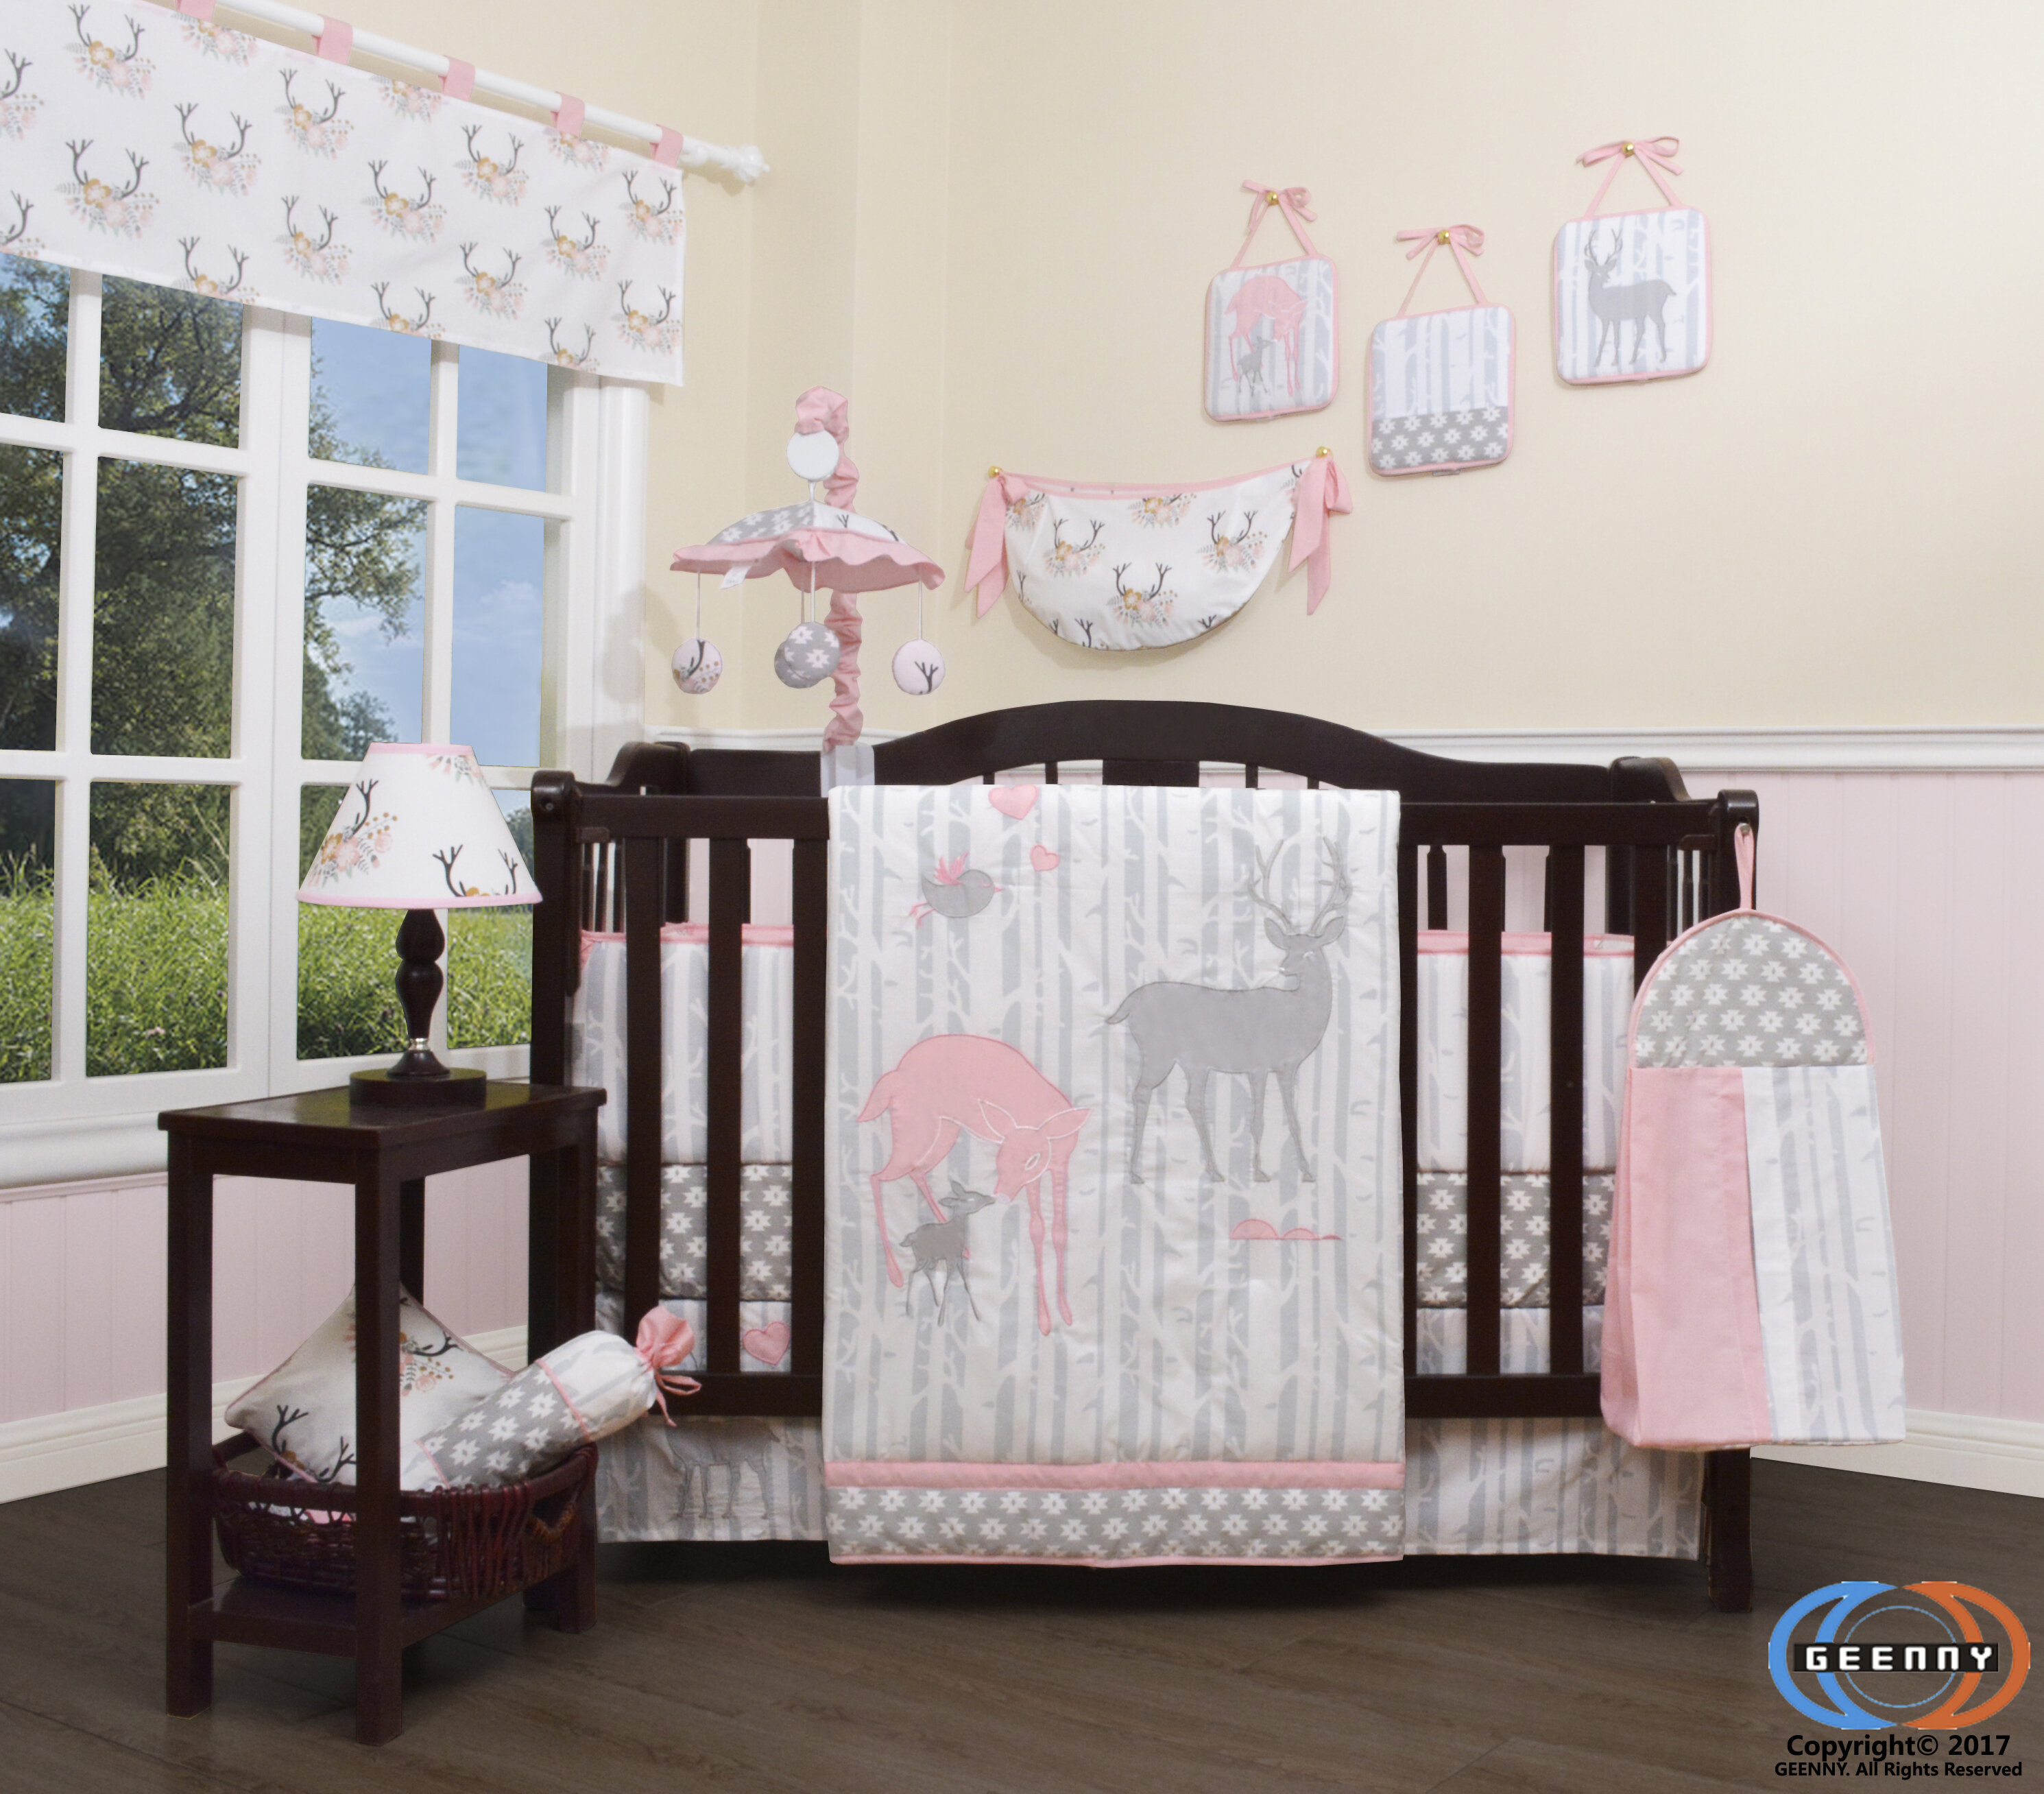 Harriet Bee Three Lakes Baby Girl Deer Family Nursery 13 Piece Crib Bedding Set Reviews Wayfair